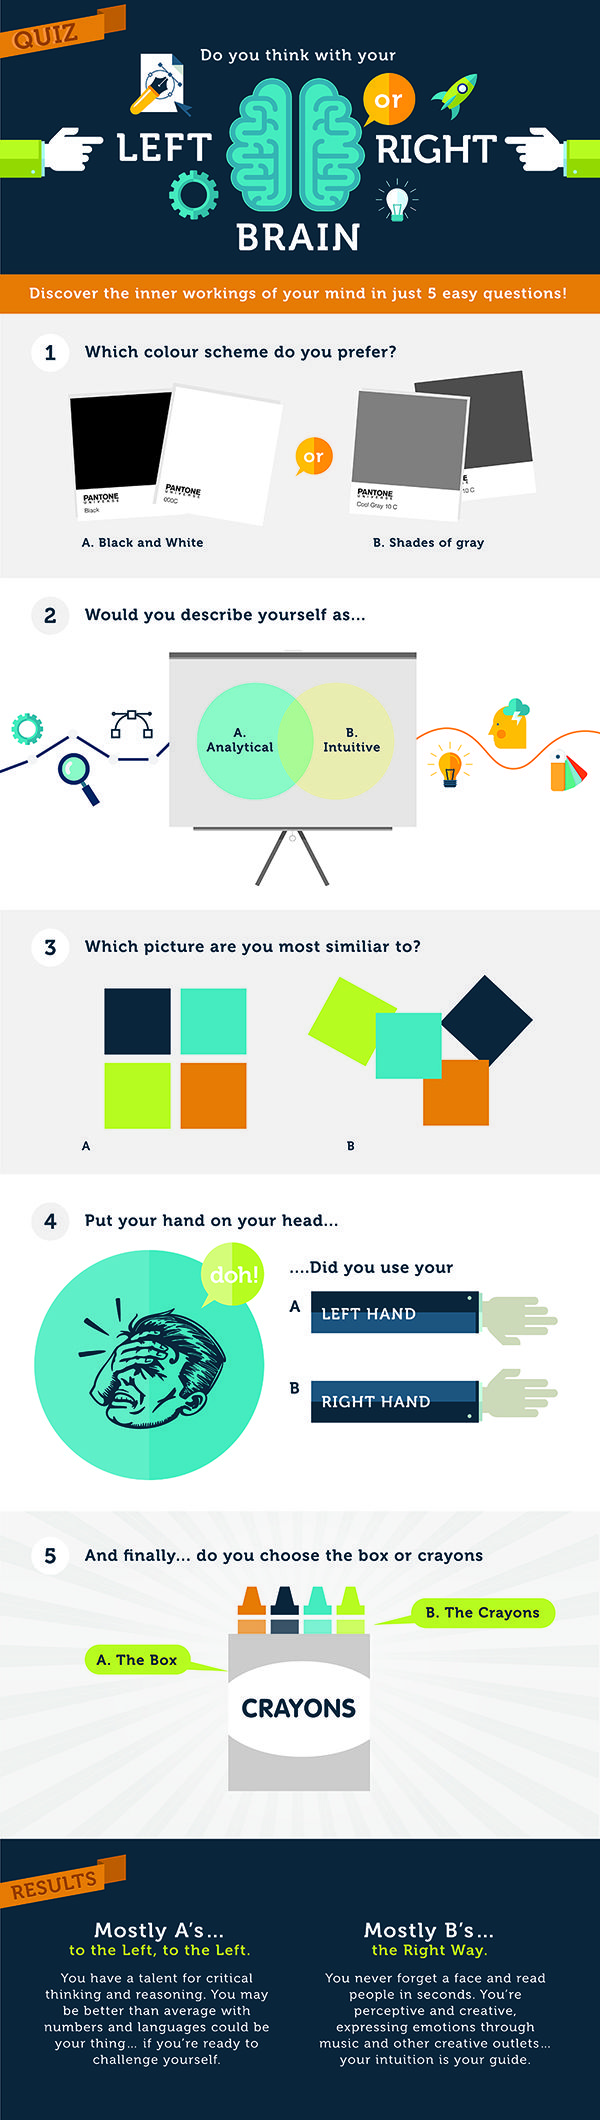 Discover how your brain works with our quick Left/Right quiz...  Created by the lovely Miranda Bruce